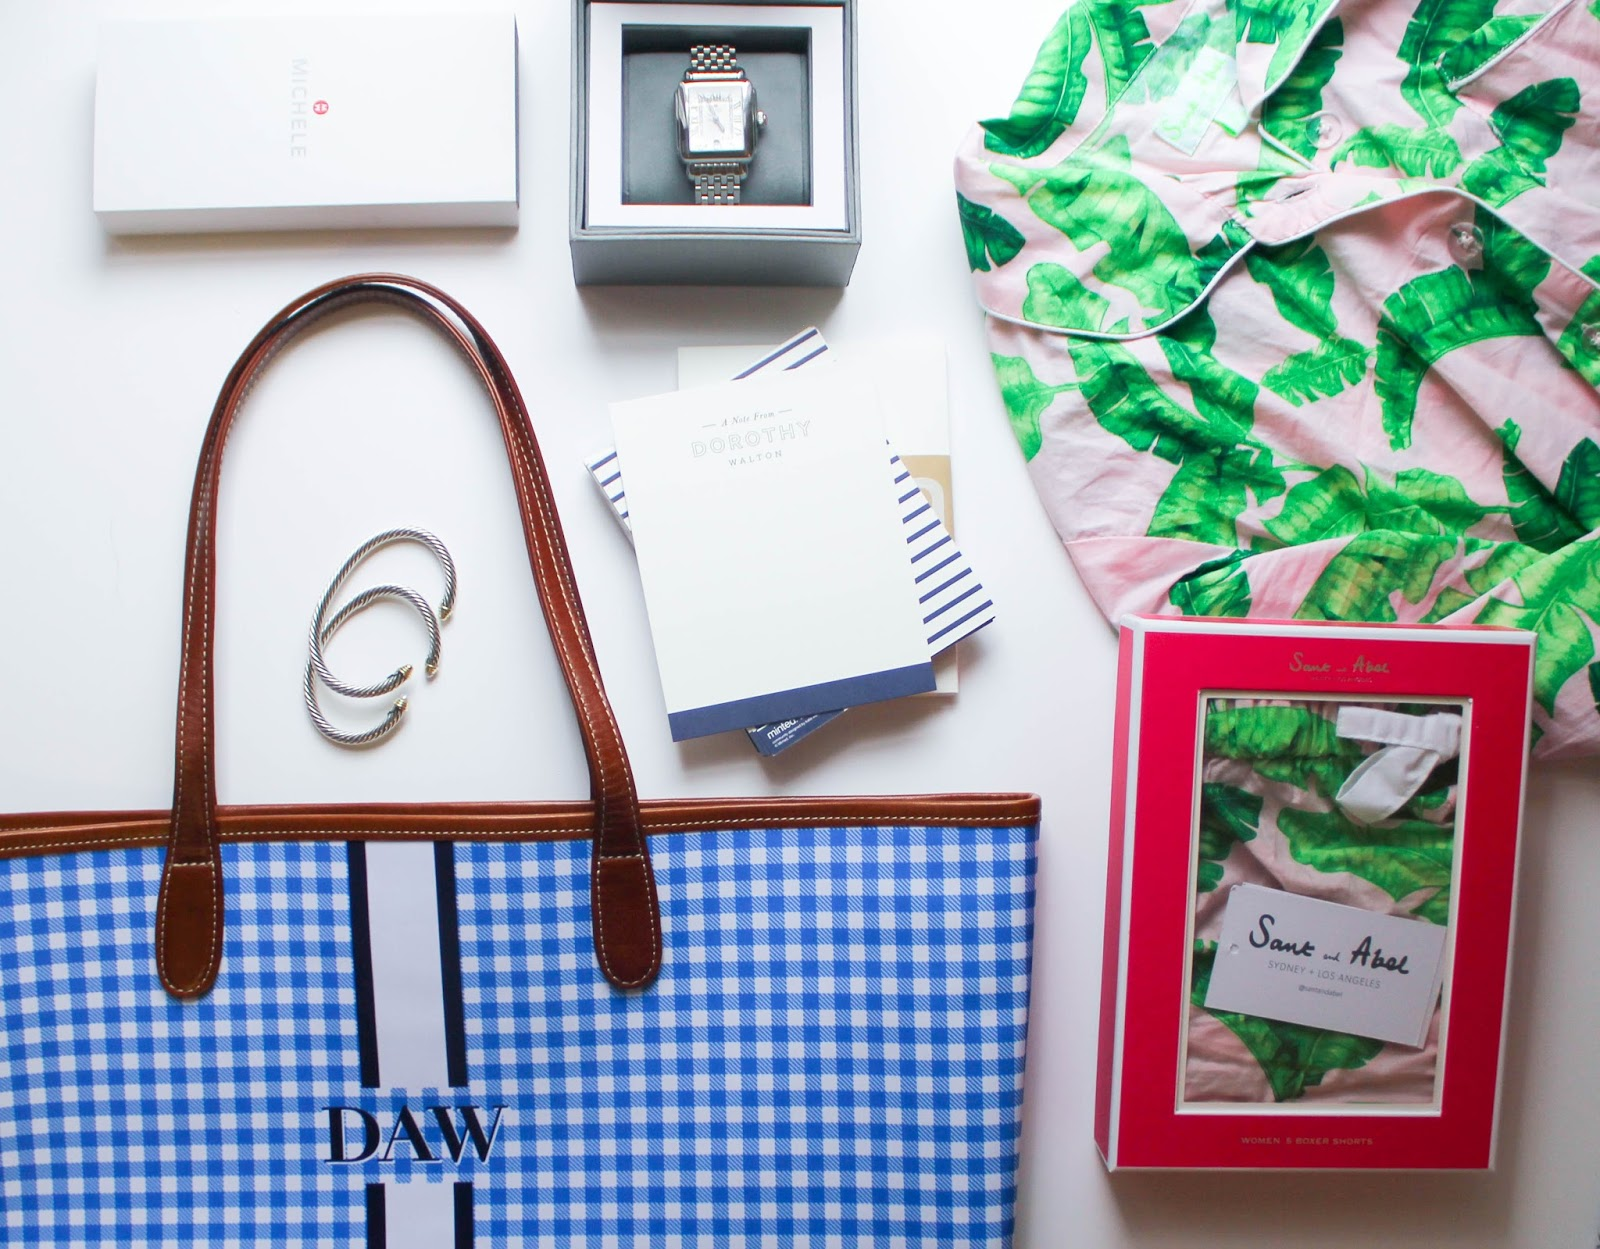 Prep in your step graduation gift ideas a number of the gifts that i was given in high school are things i still use regularly the monogrammed towels and shower wrap are used daily as is the negle Images